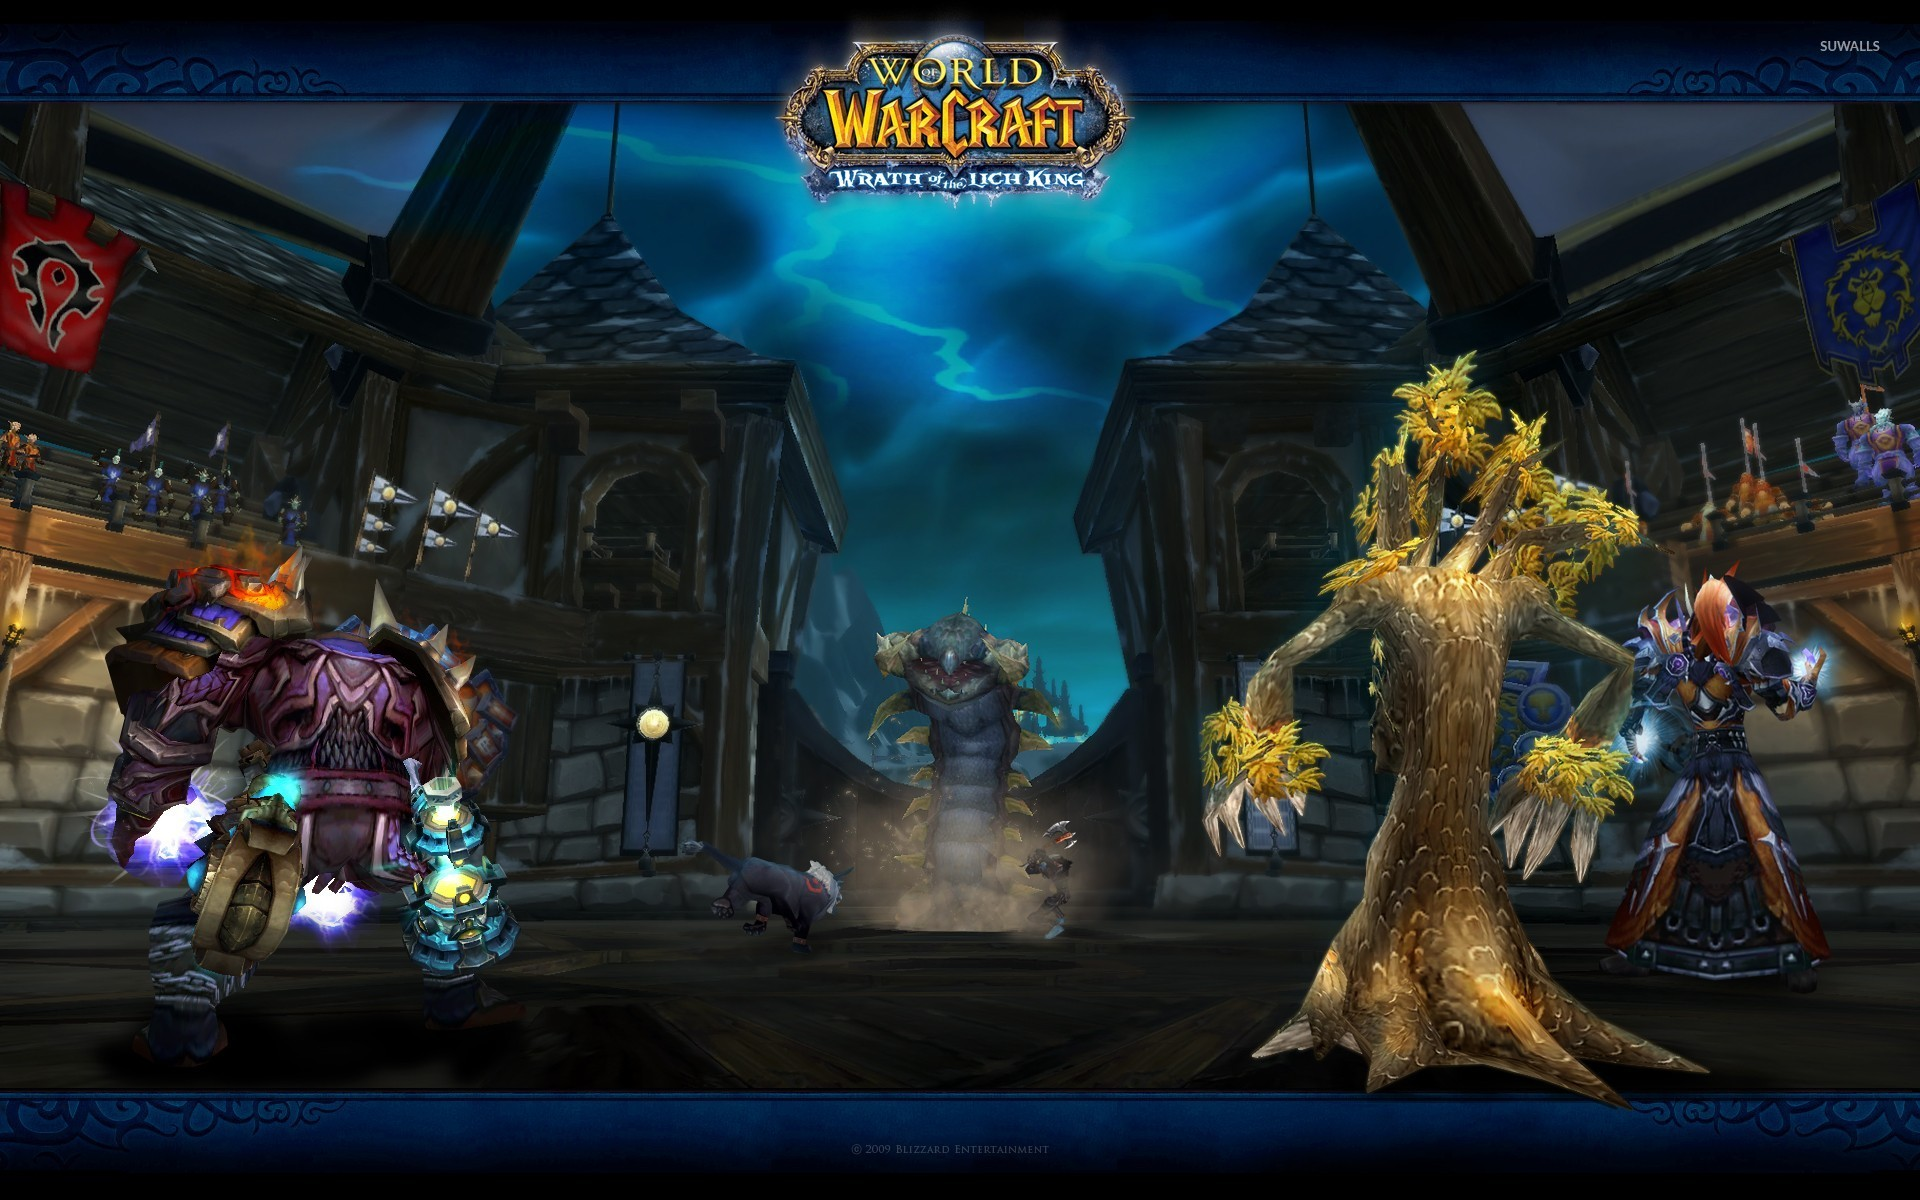 world of warcraft wrath of the lich king download free full game